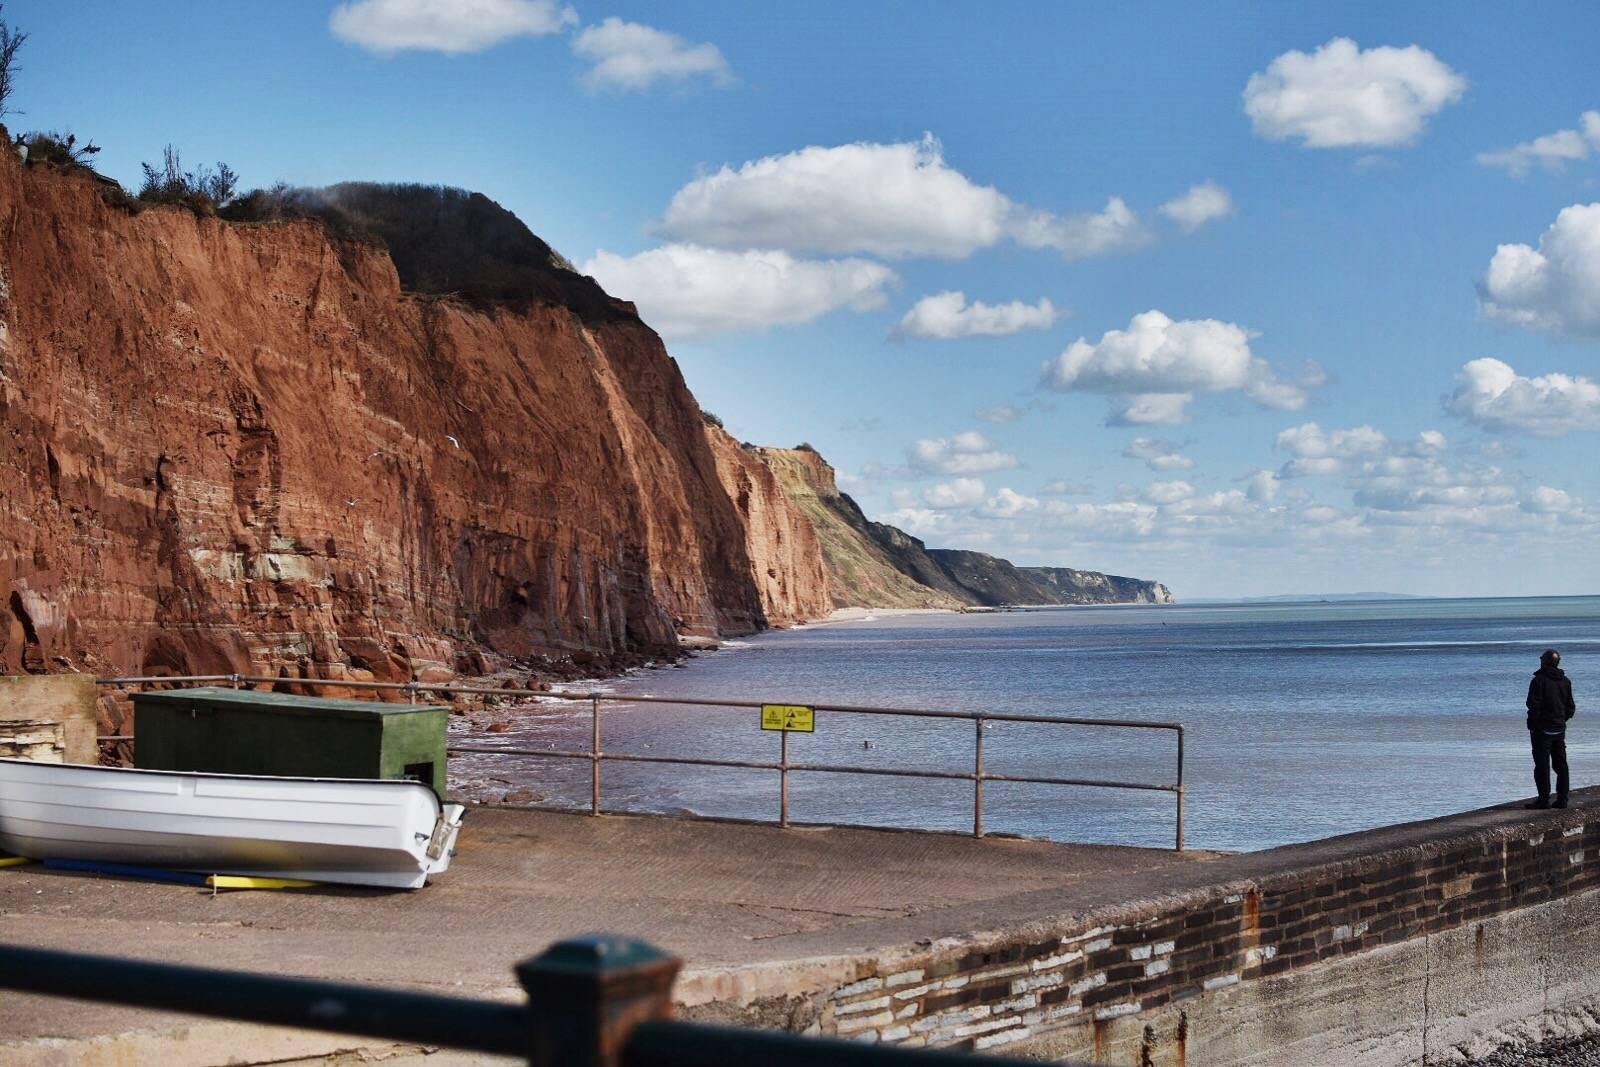 Getting out and about on the East Devon coast as I revisit my healthy living plan